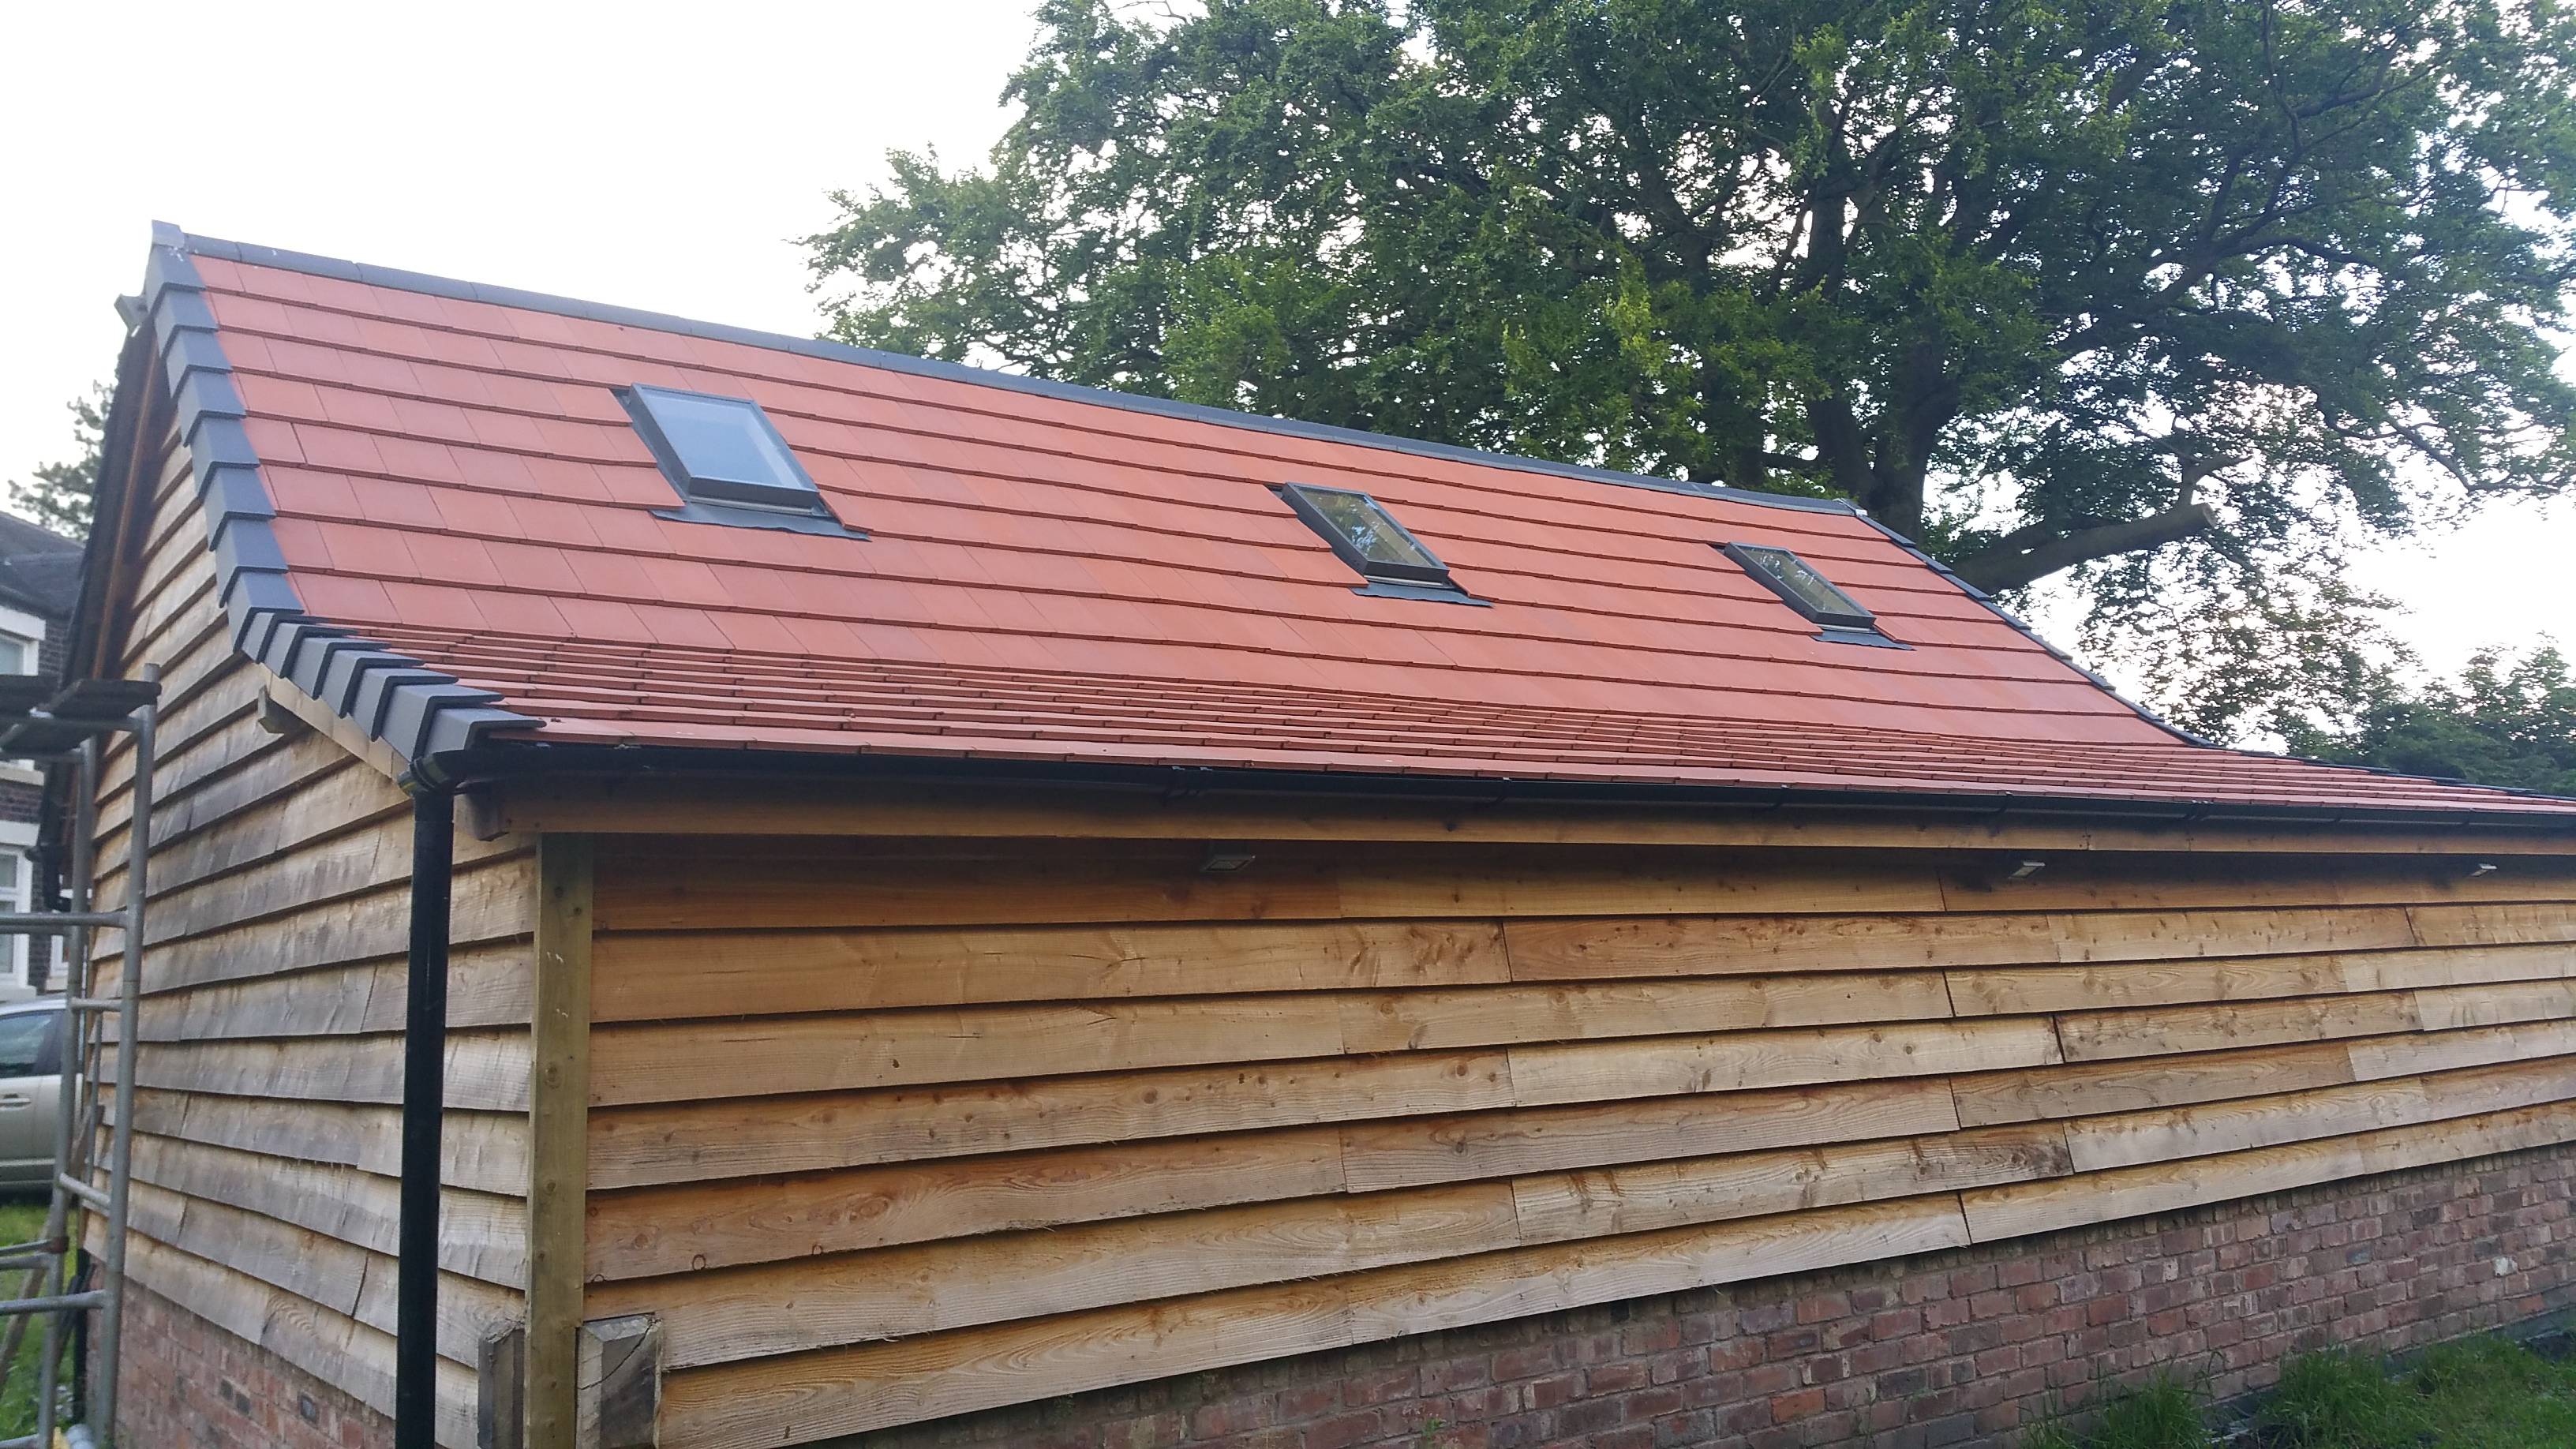 Verea clay roof tile, 50 year Guarantee